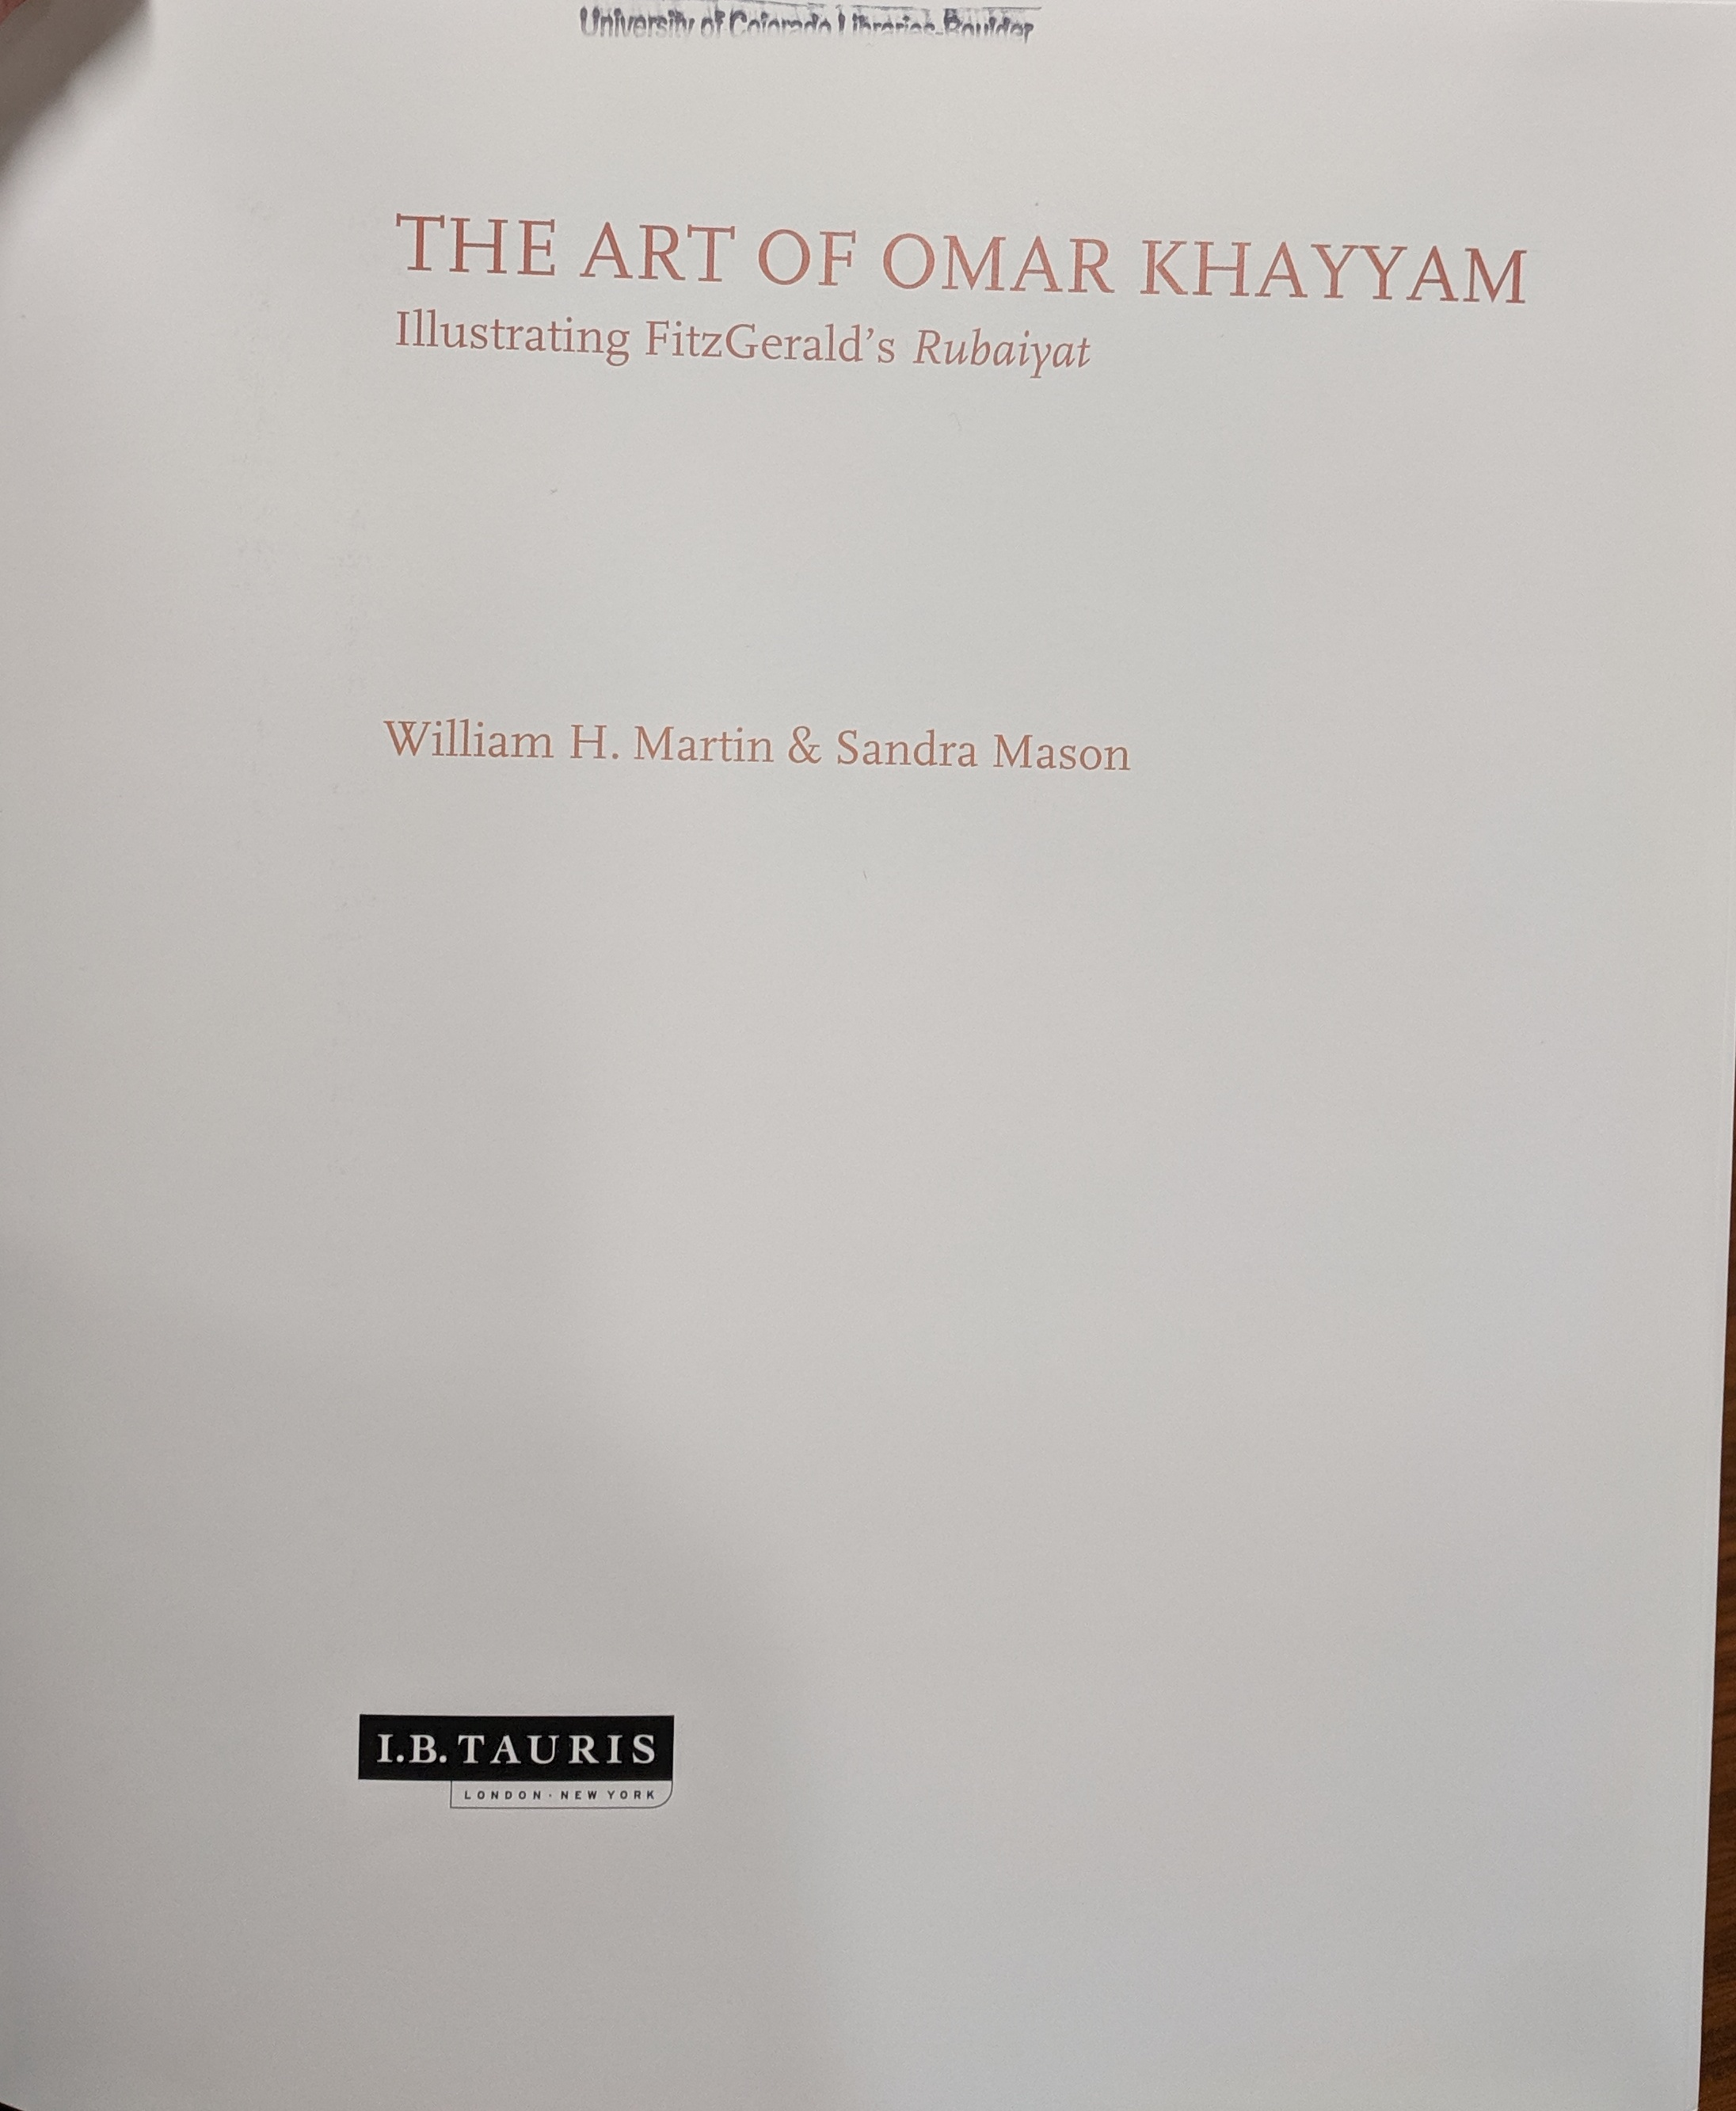 art of omar khayyam